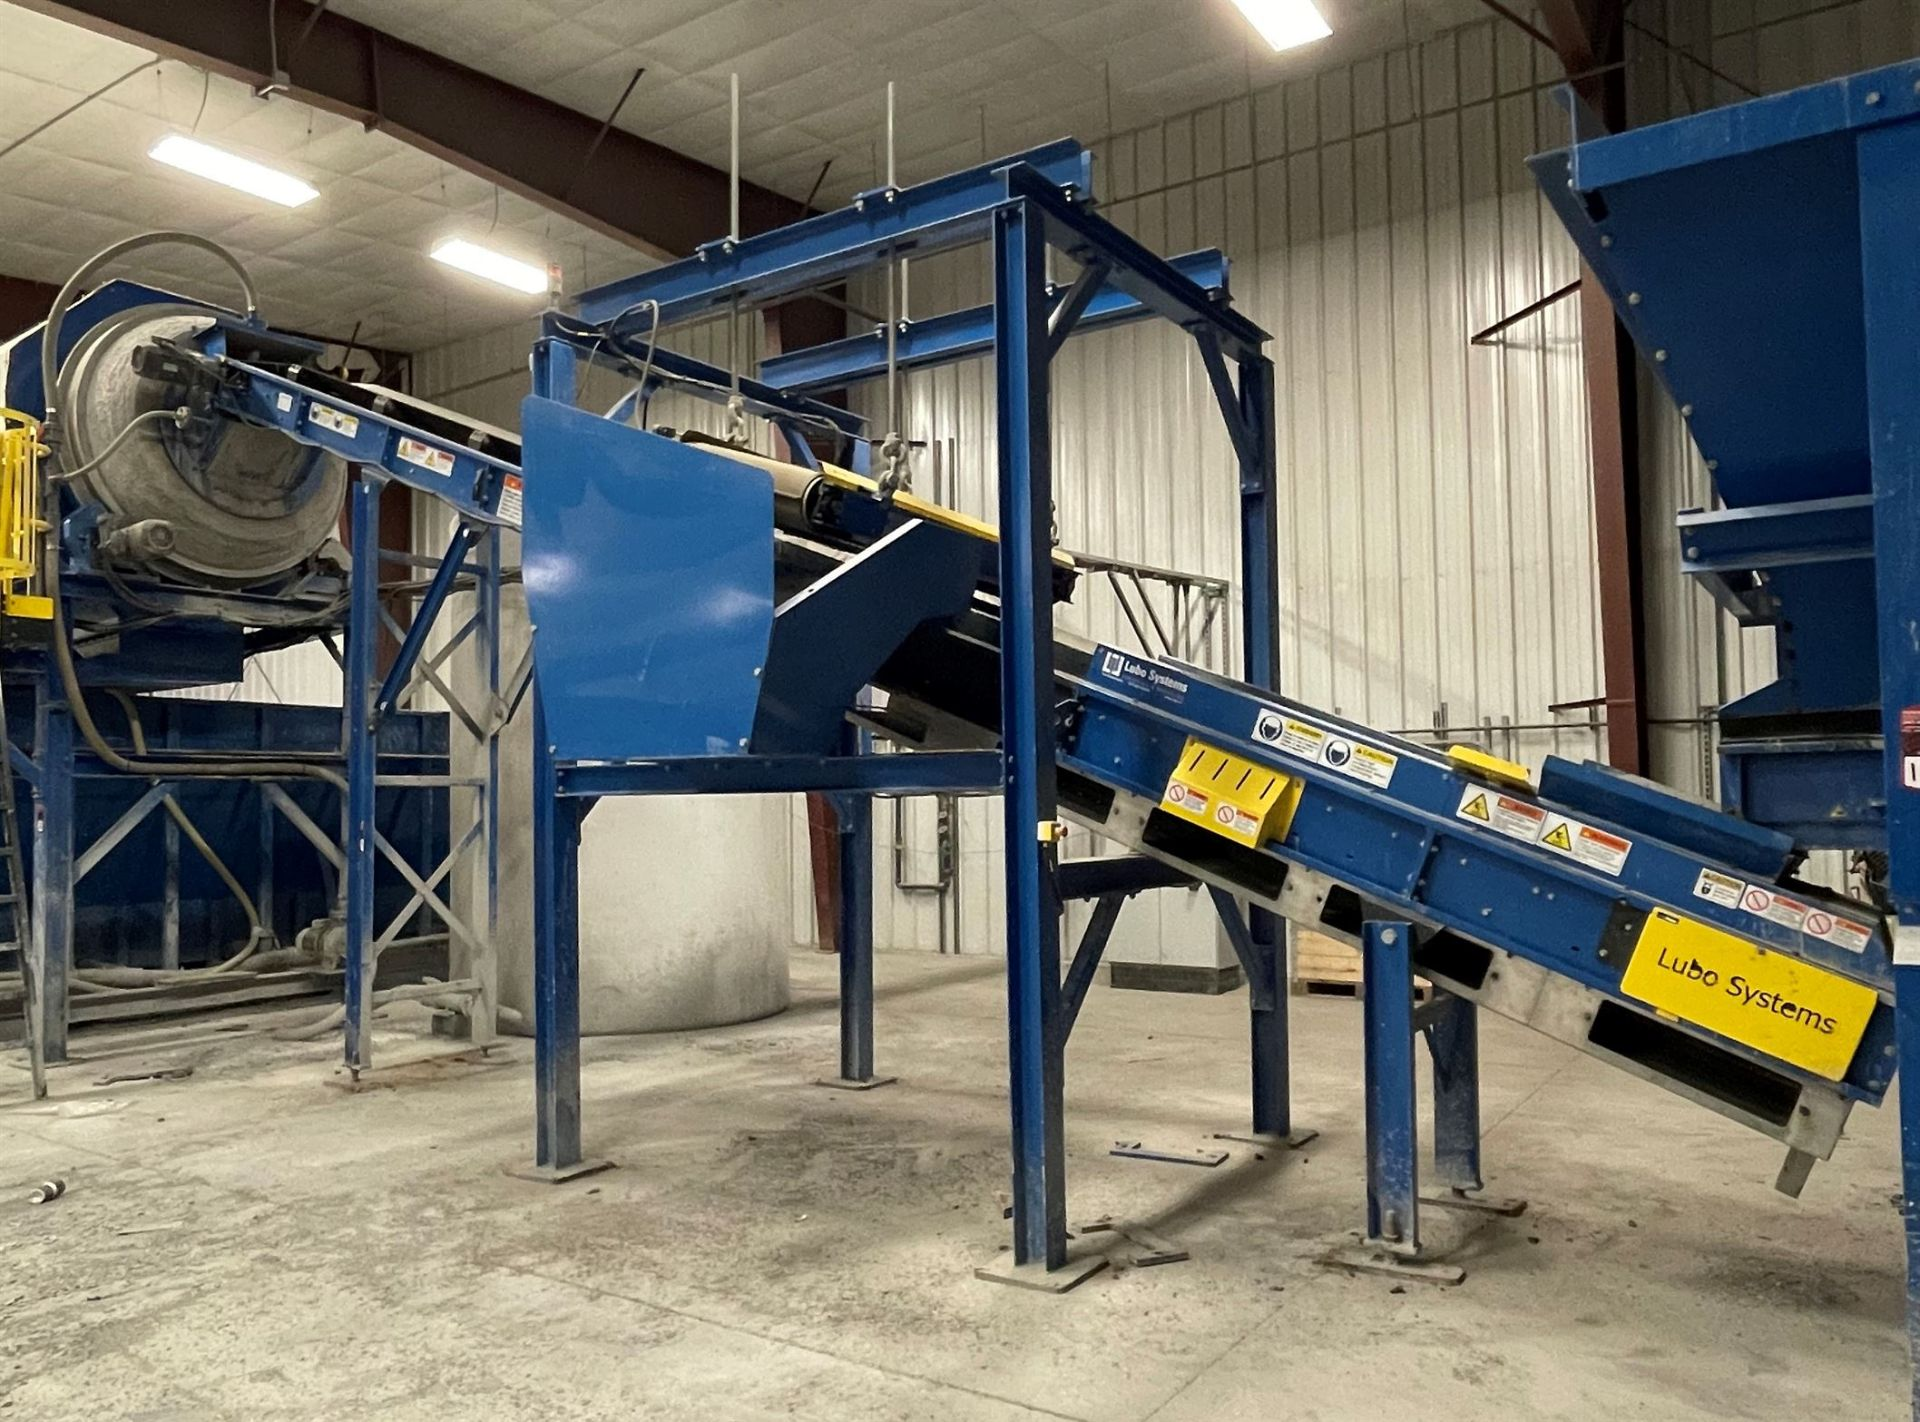 BULK LOT: 2015 VDL SYSTEMS Metal Recovery Washer Separation Line as a Complete System, Comprising - Image 5 of 14